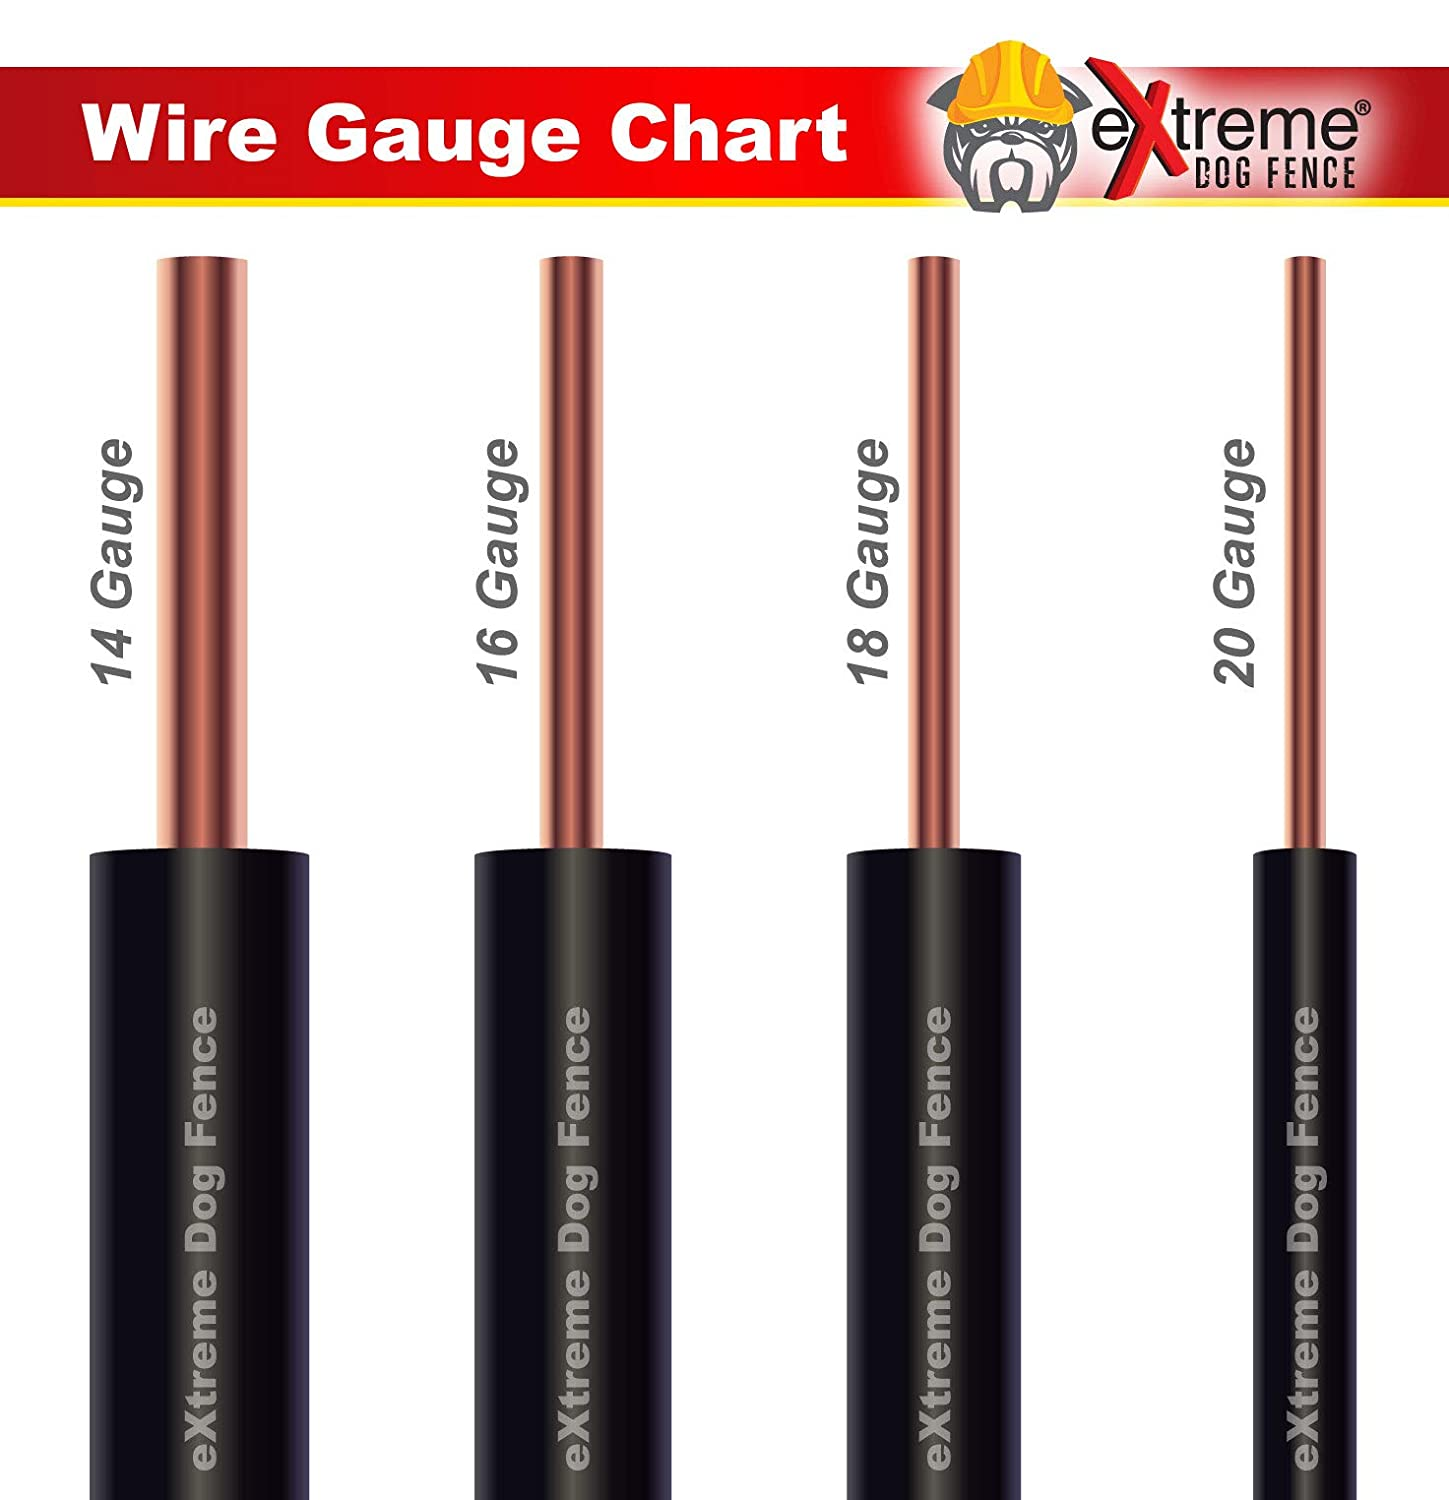 Extreme Dog Fence UV Resistant, Solid Copper Wire Universally Compatible with Any Wired Electronic Pet Fence System